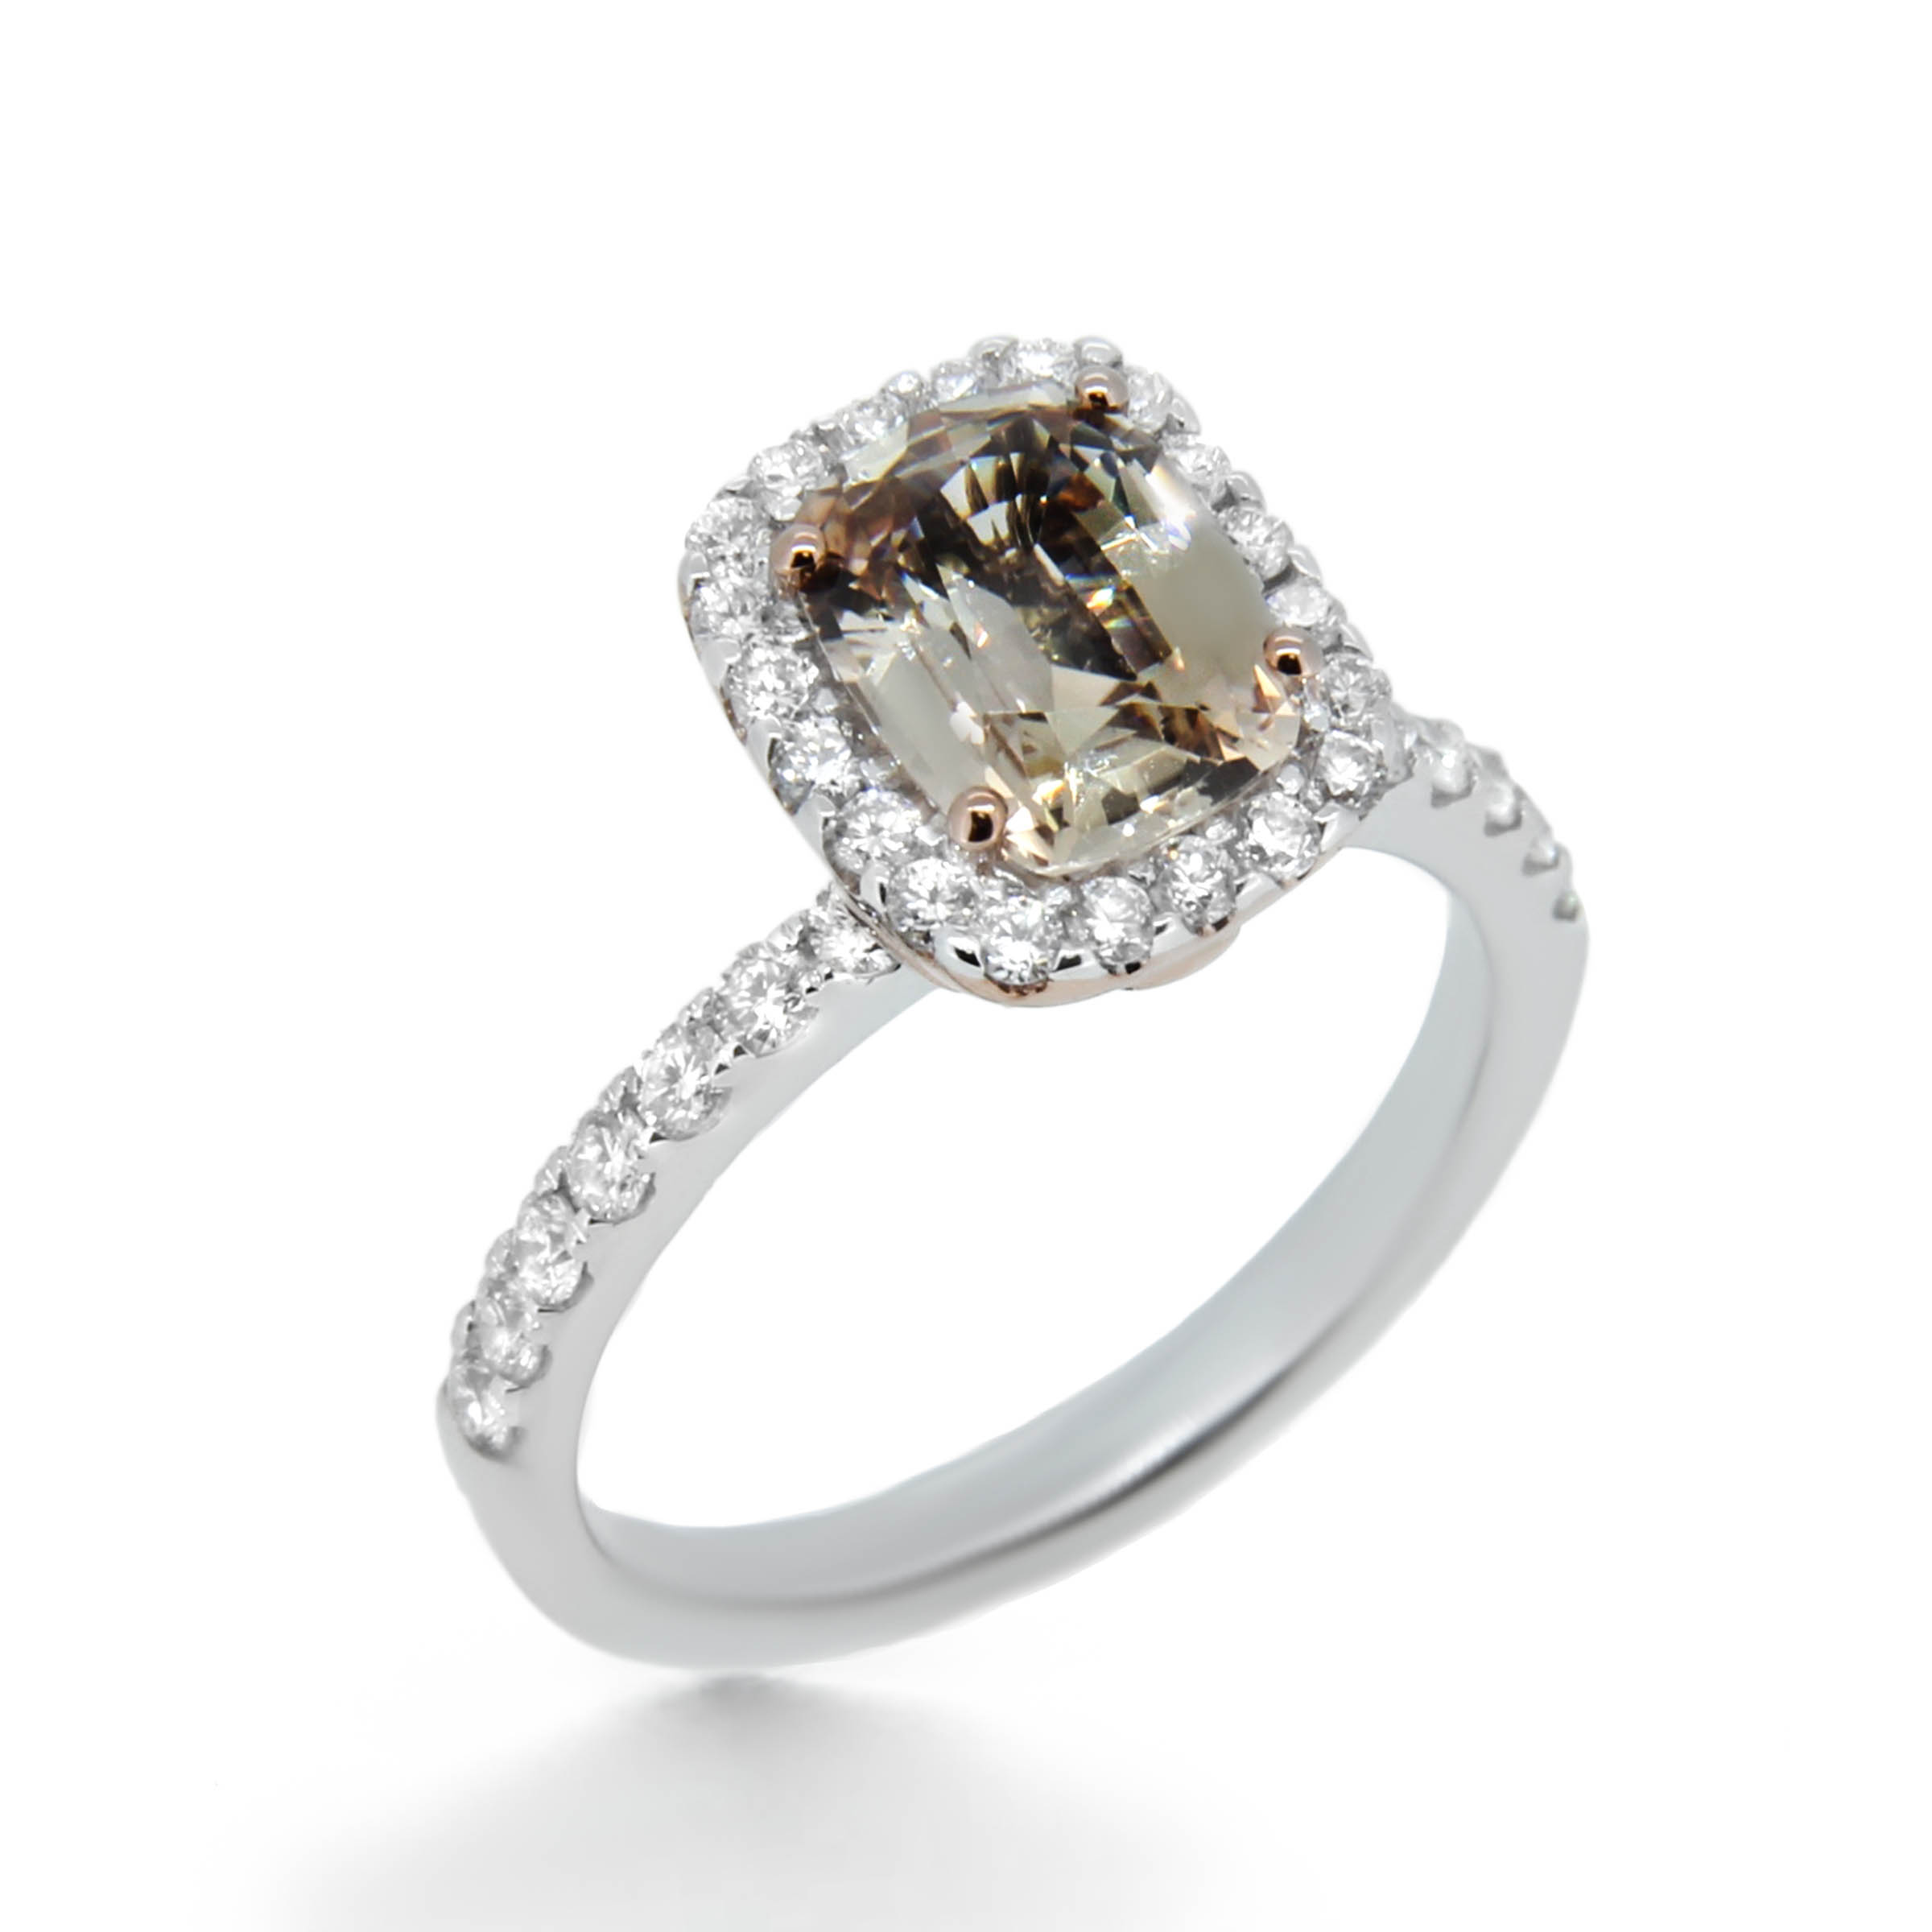 champagne diamond cushion cut engagement ring- haywards of hong kong